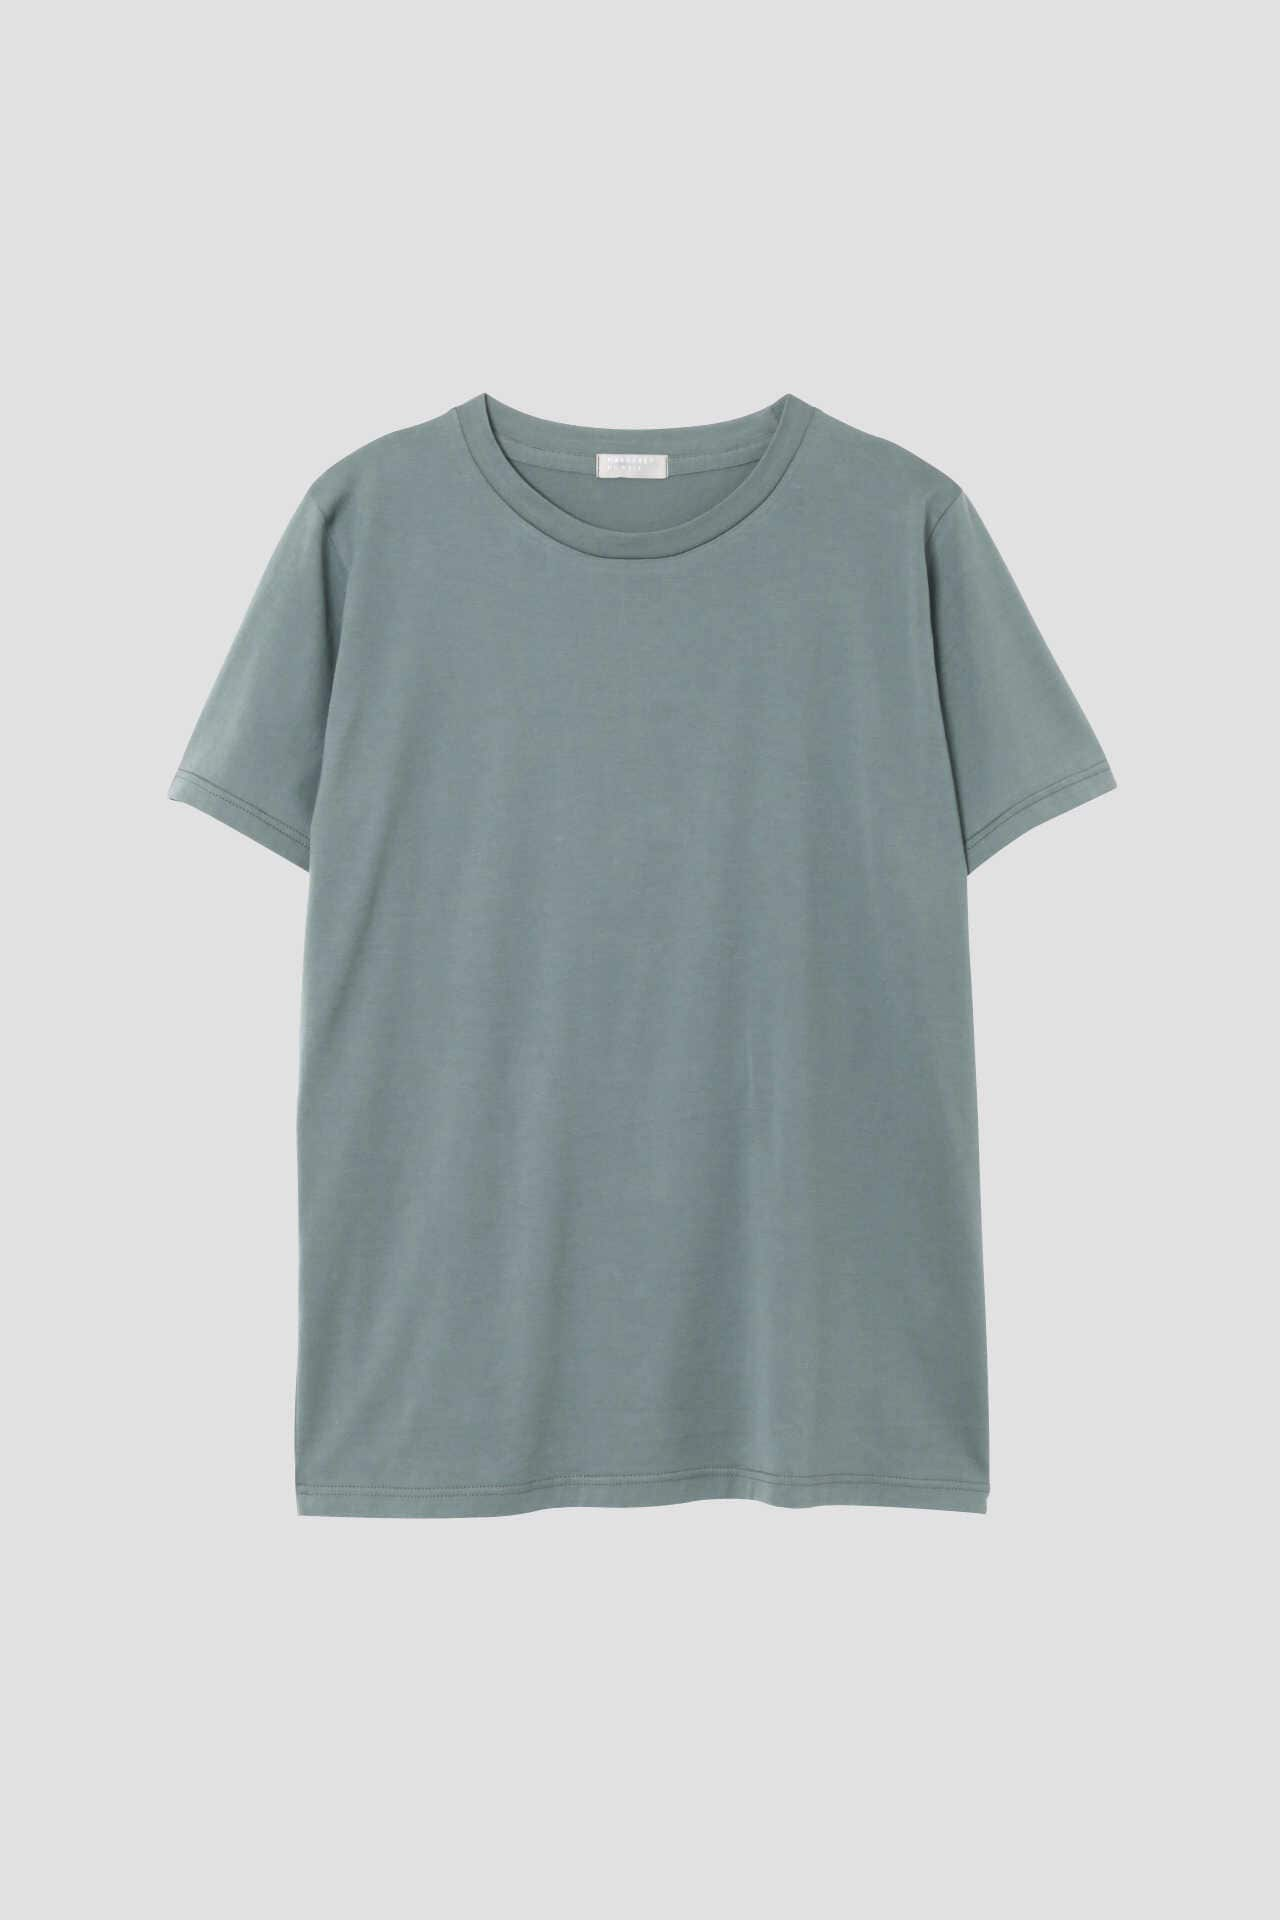 SUPERFINE COTTON JERSEY10